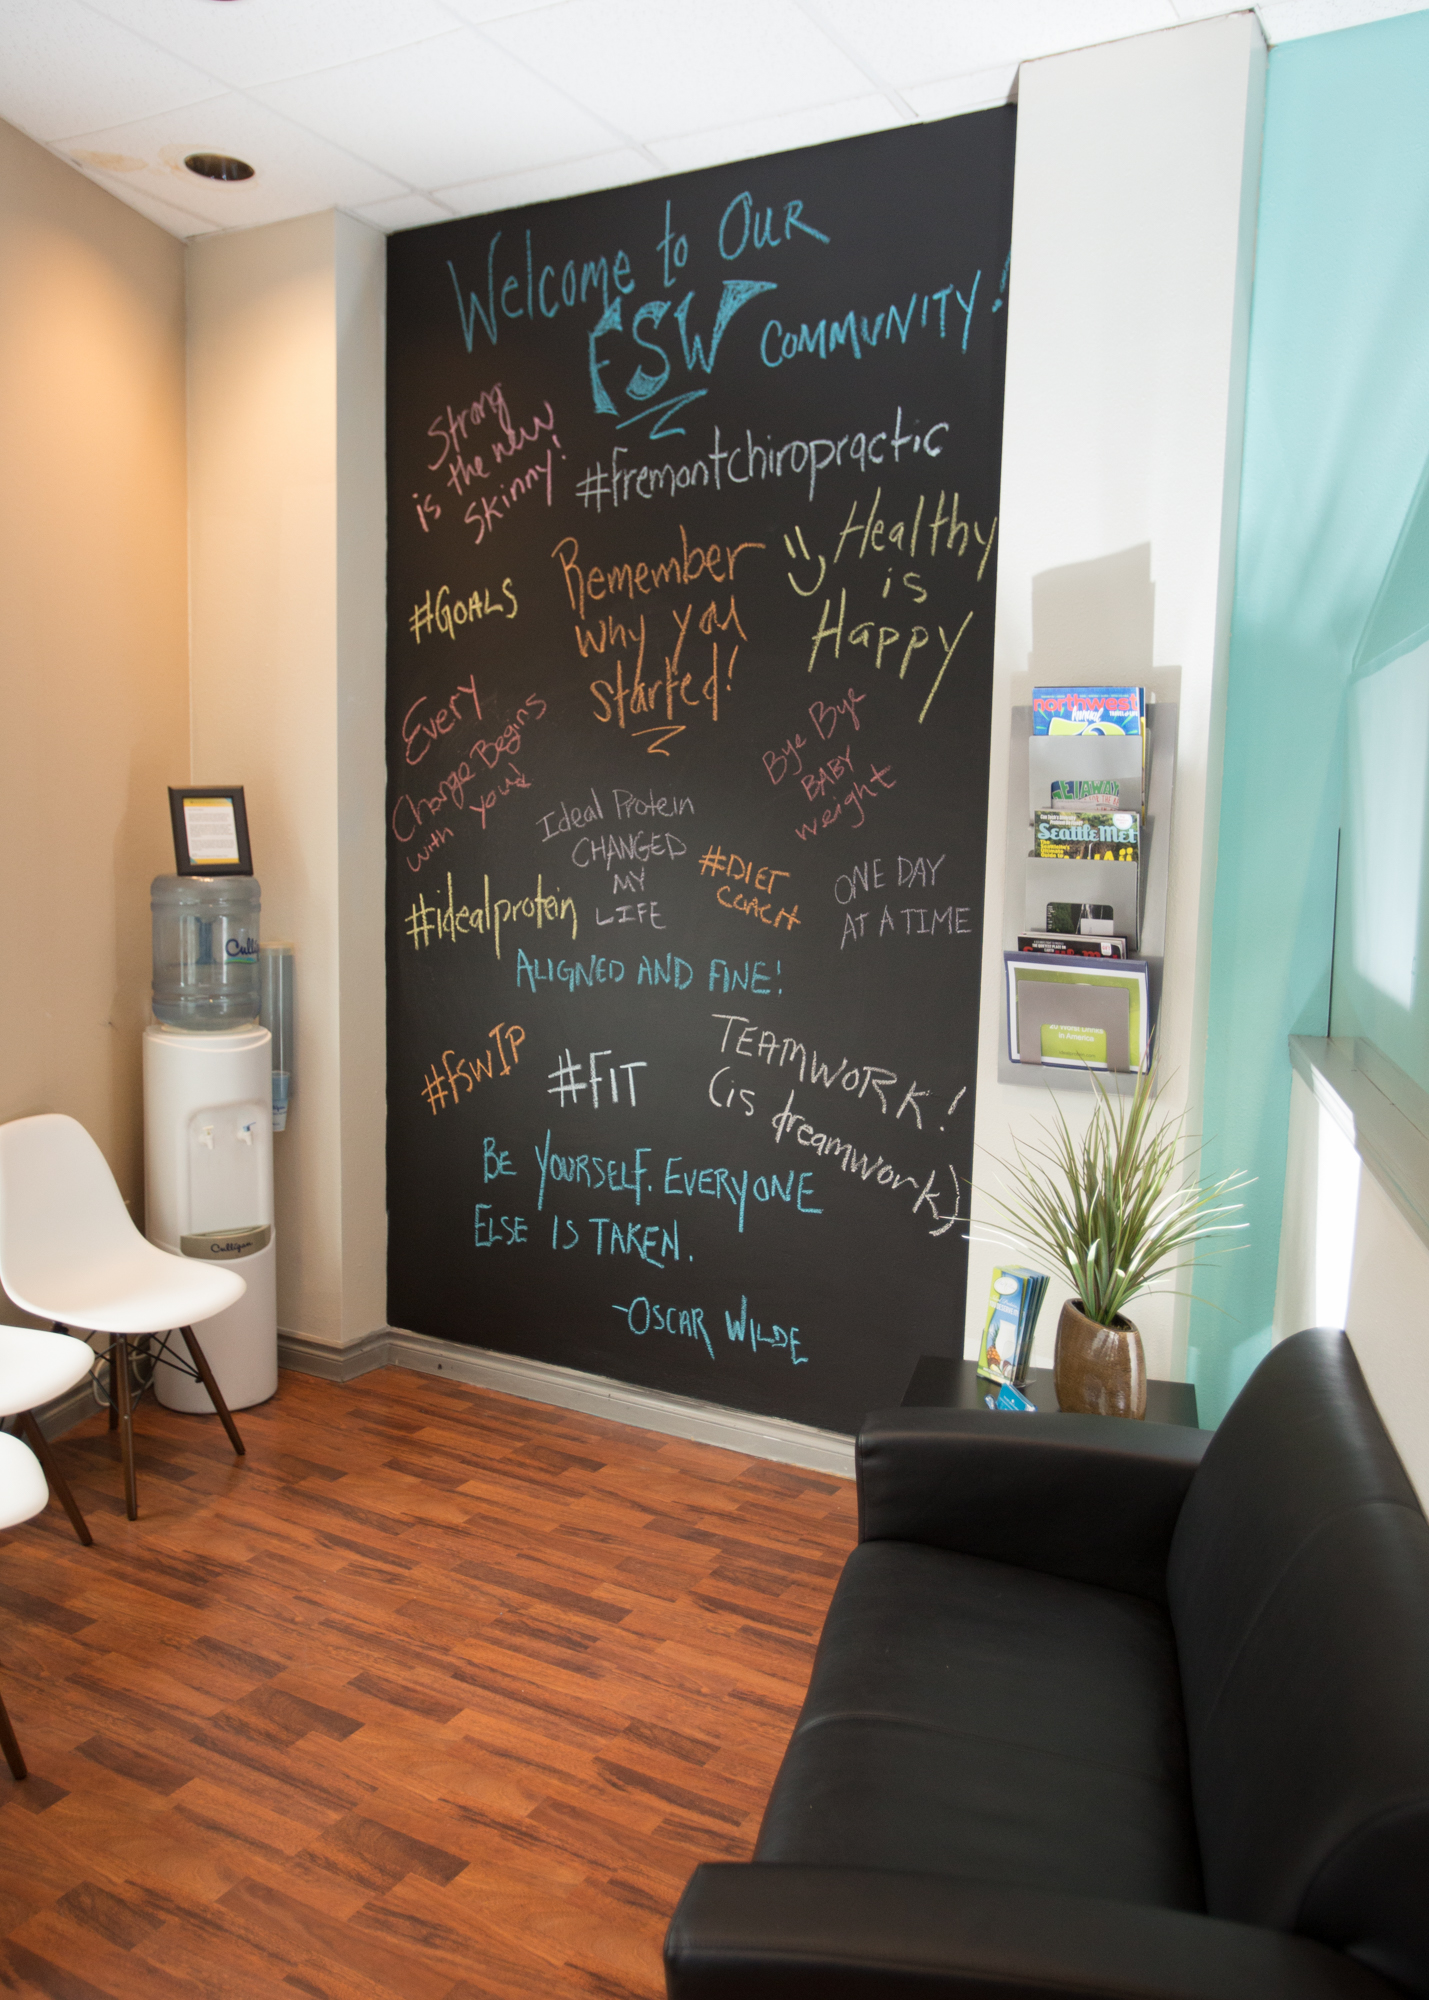 This chalk board wall is full of positive affirmations and pick me ups.  Such a supportive environment.  Any guesses which one I wrote?  Hint, it has to do with a baby!                                           (Image: The Jeremy Townsend Experience)